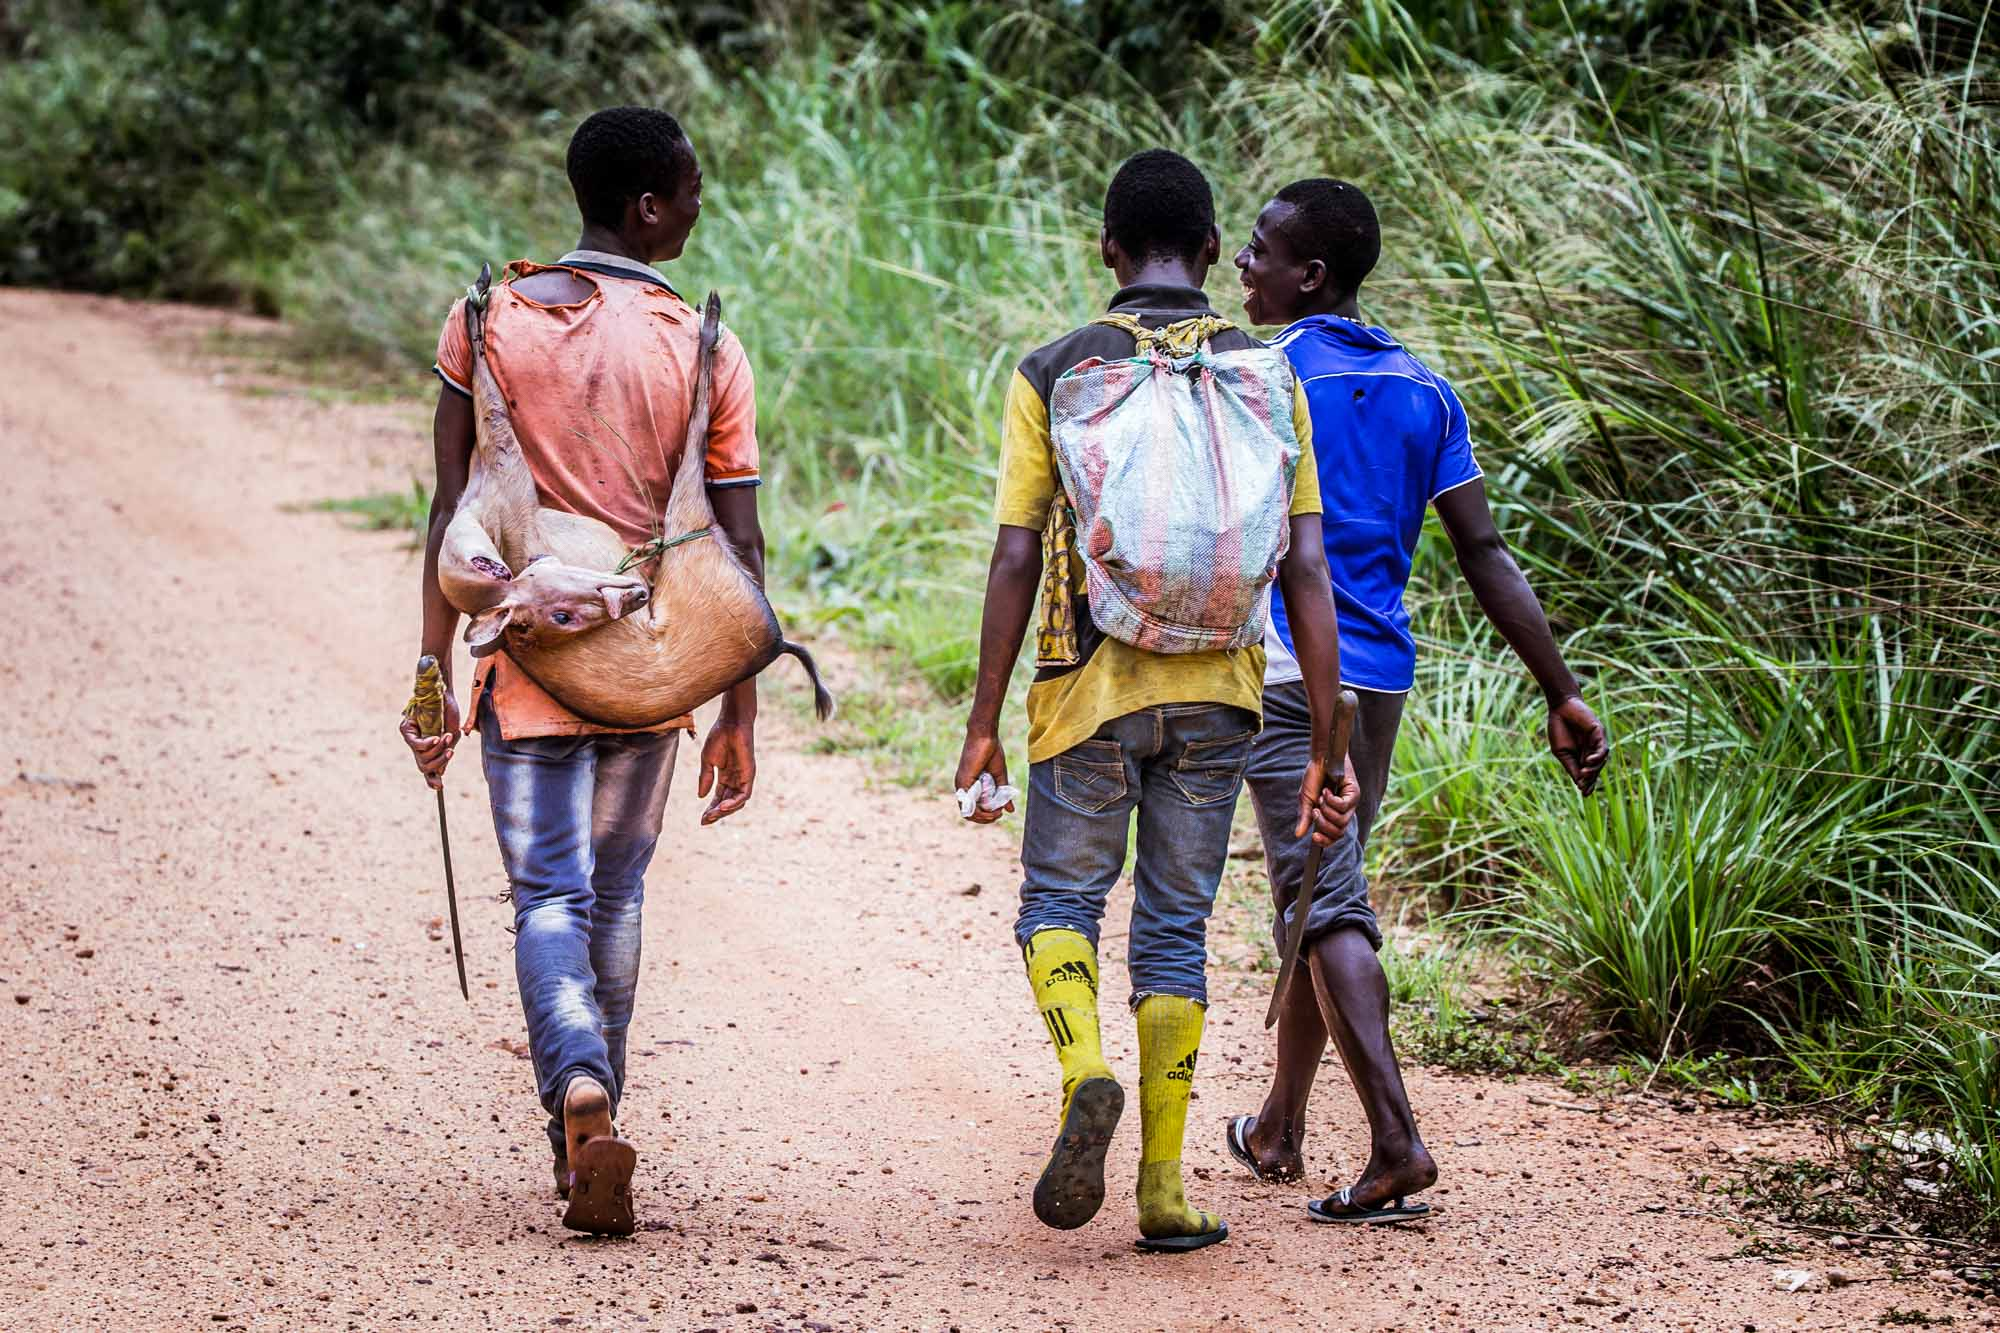 Three young men on a public road near Odzala-Kokoua National Park. The man on the left is carrying a duiker antelope which he had caught in a snare.